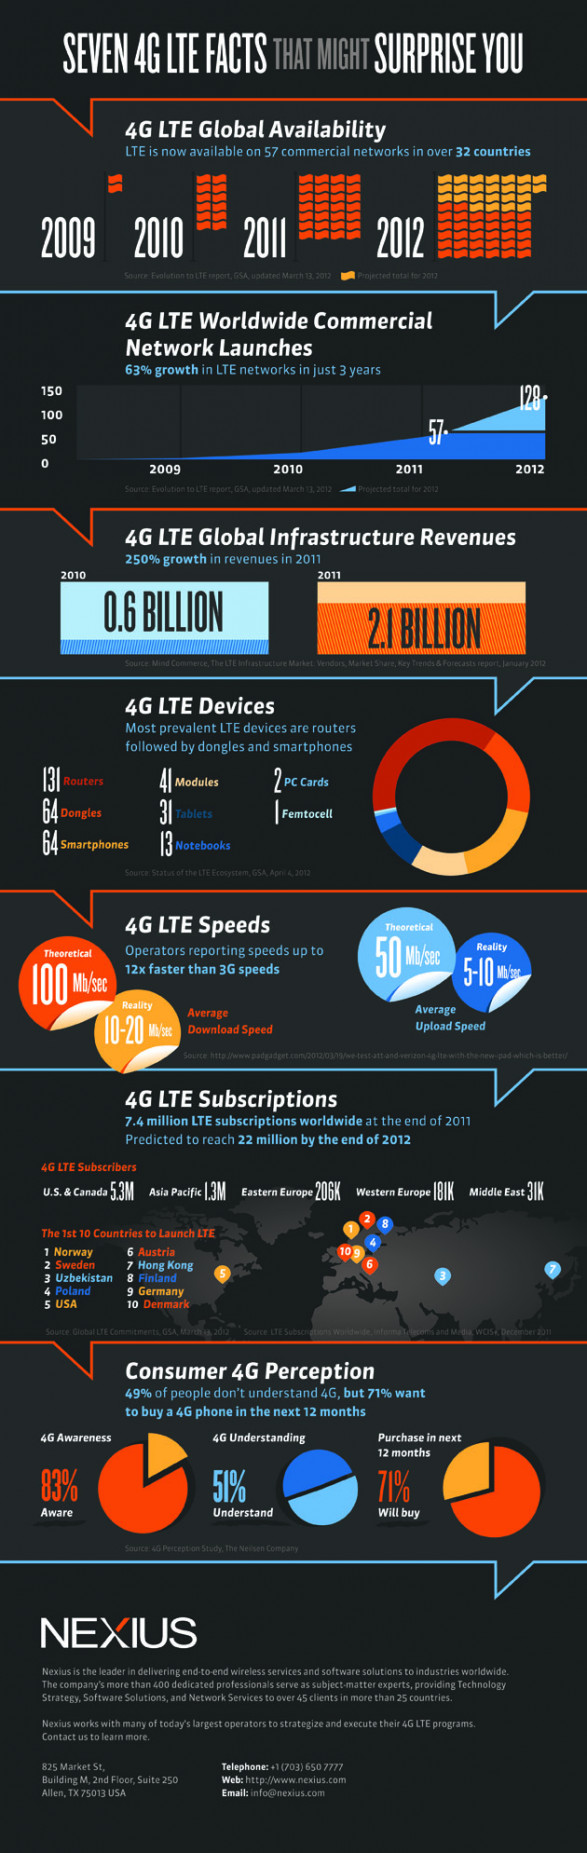 Seven 4G LTE Facts